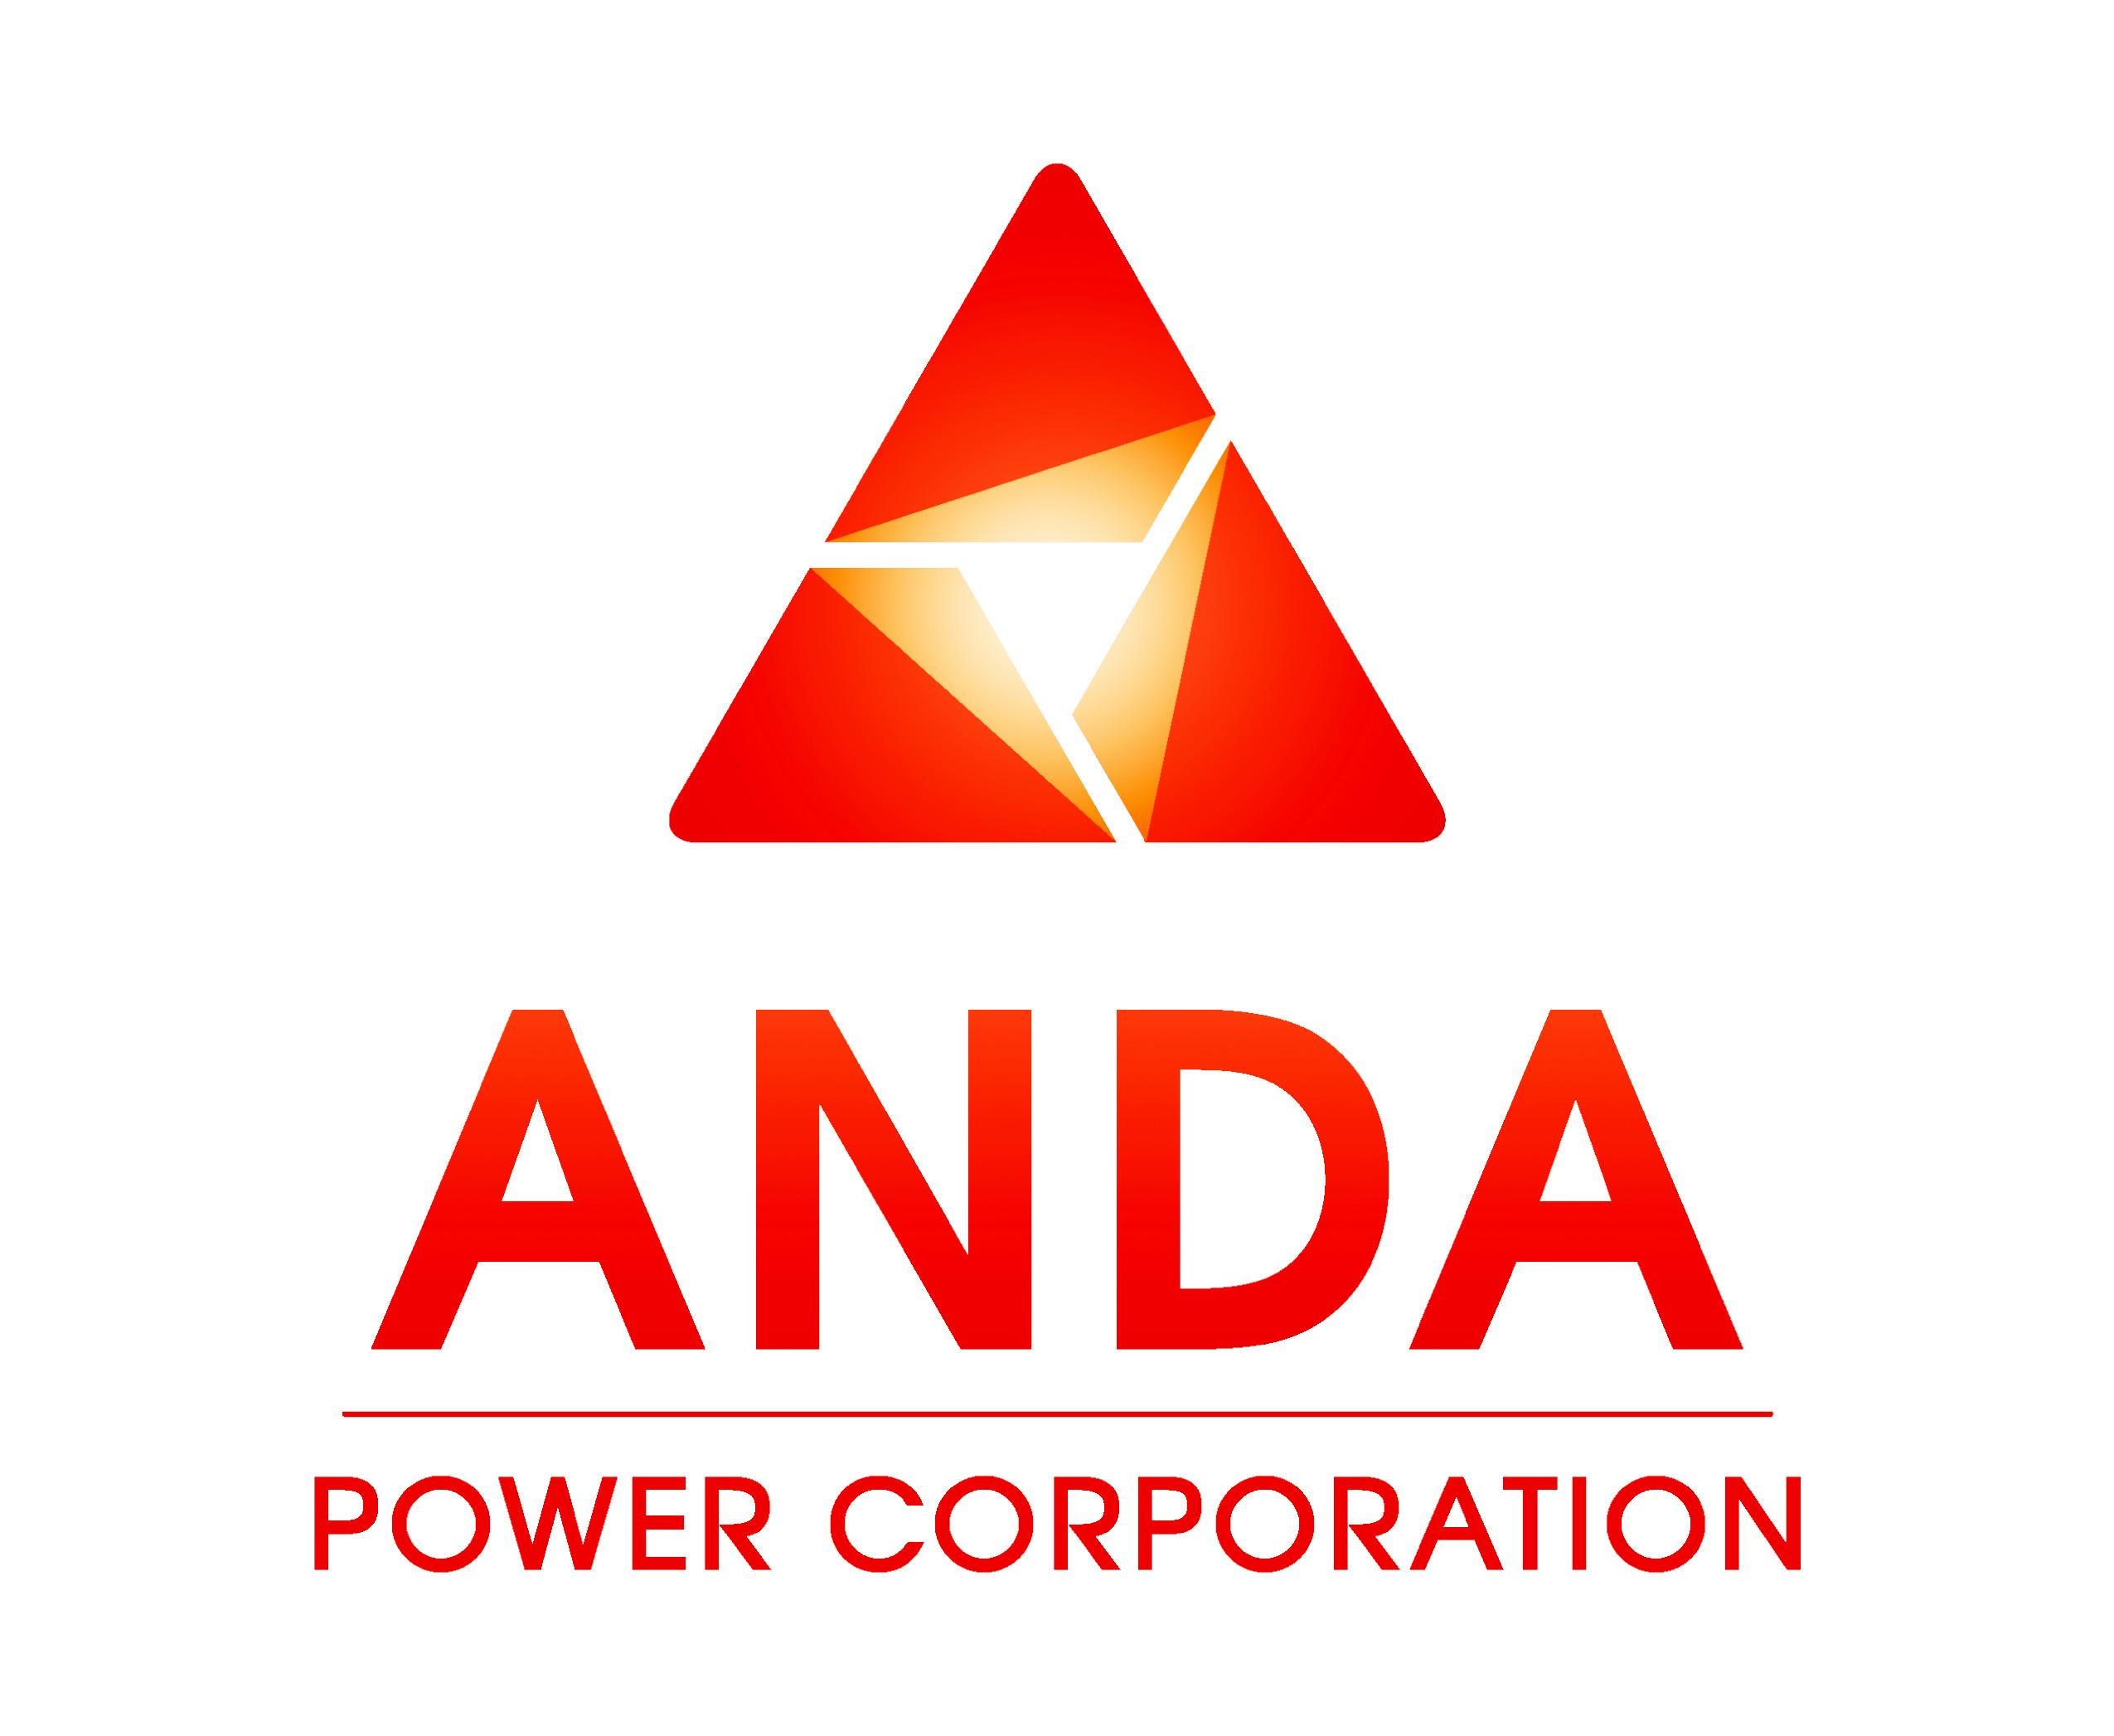 Anda Power Corporation